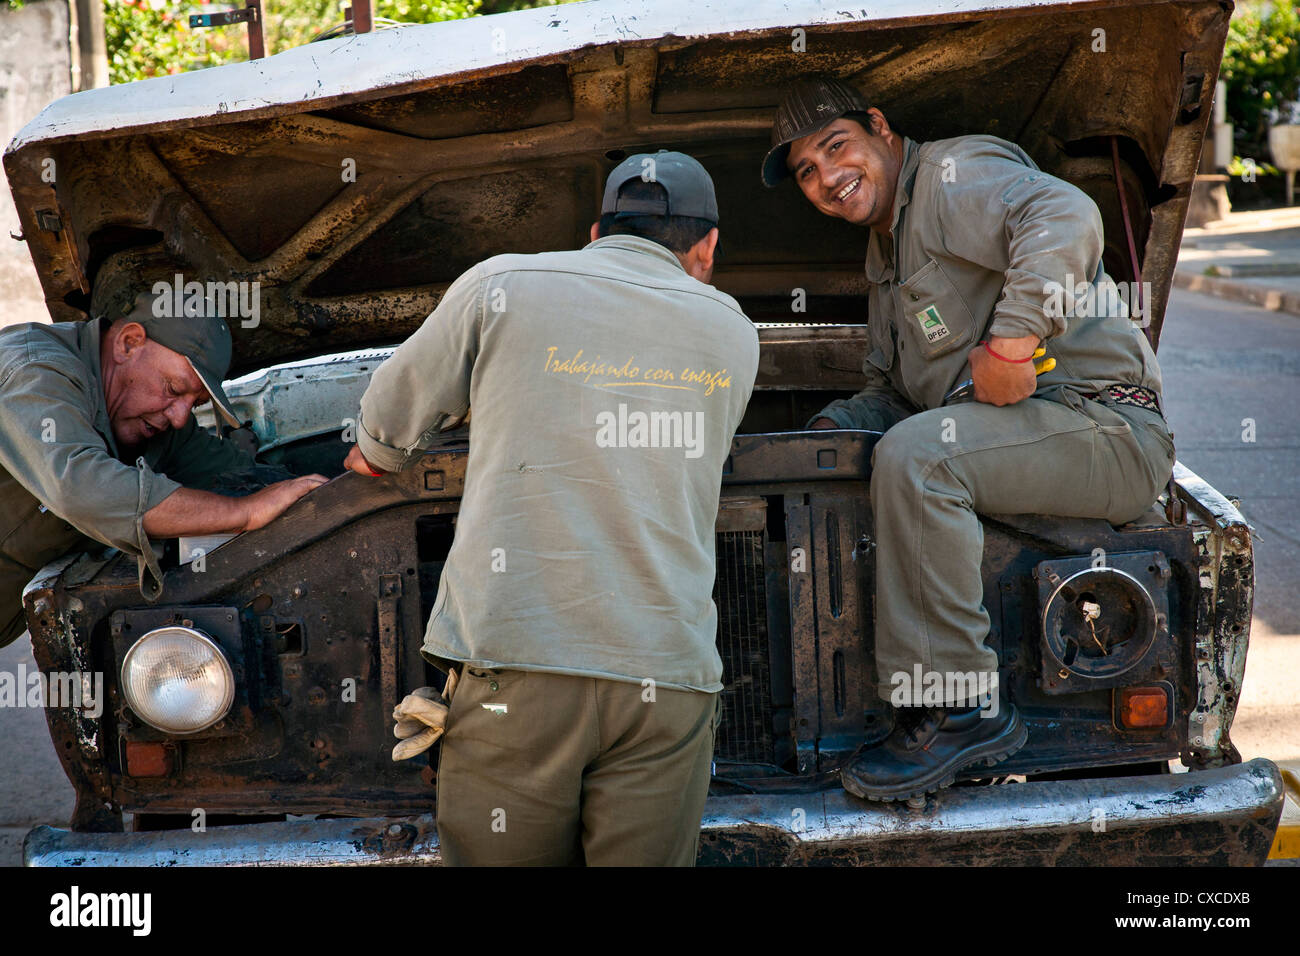 Car mechanics, Mercedes, Corrientes Province, Argentina. - Stock Image